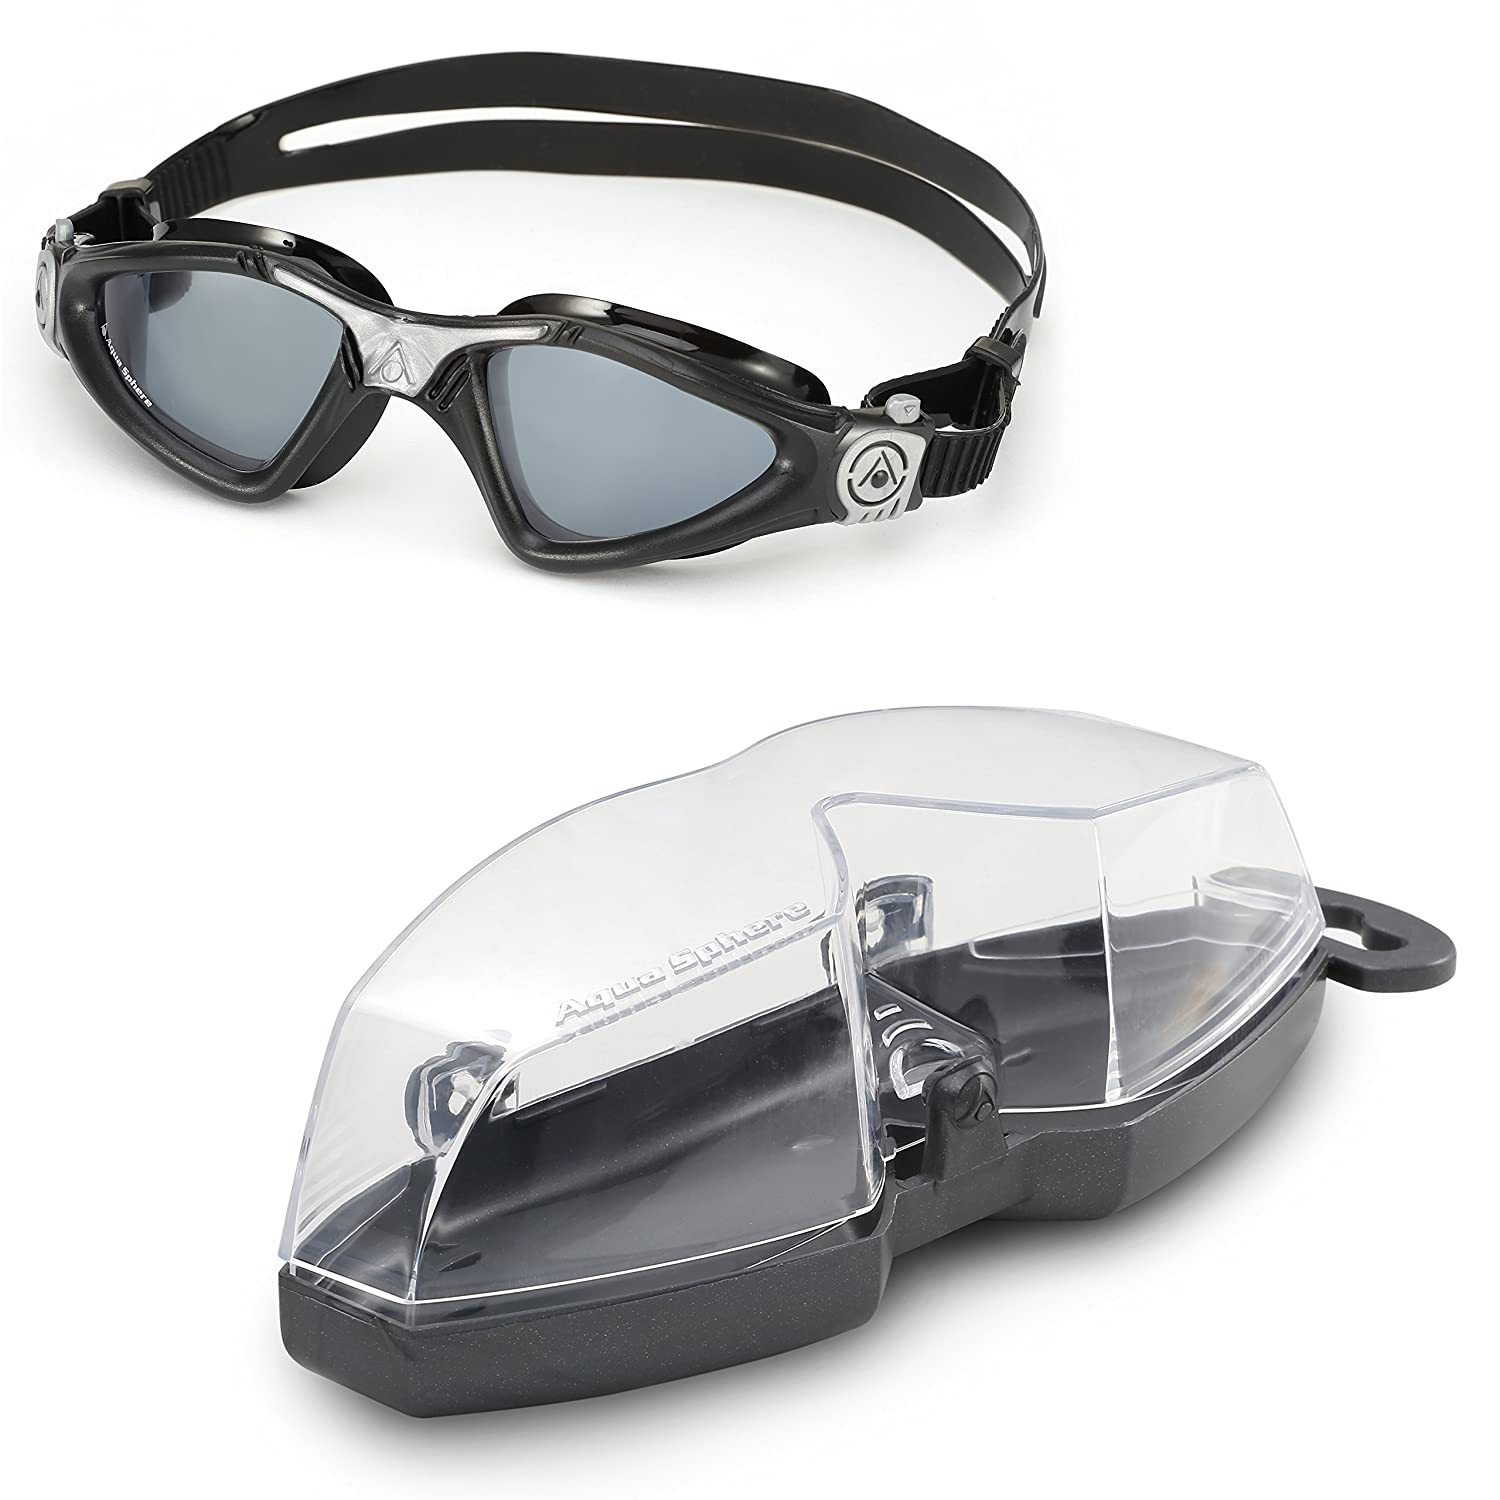 Aqua Sphere Kayenne Swim Goggles Adult UV Protection Anti Fog Swimming Goggles Made in Italy